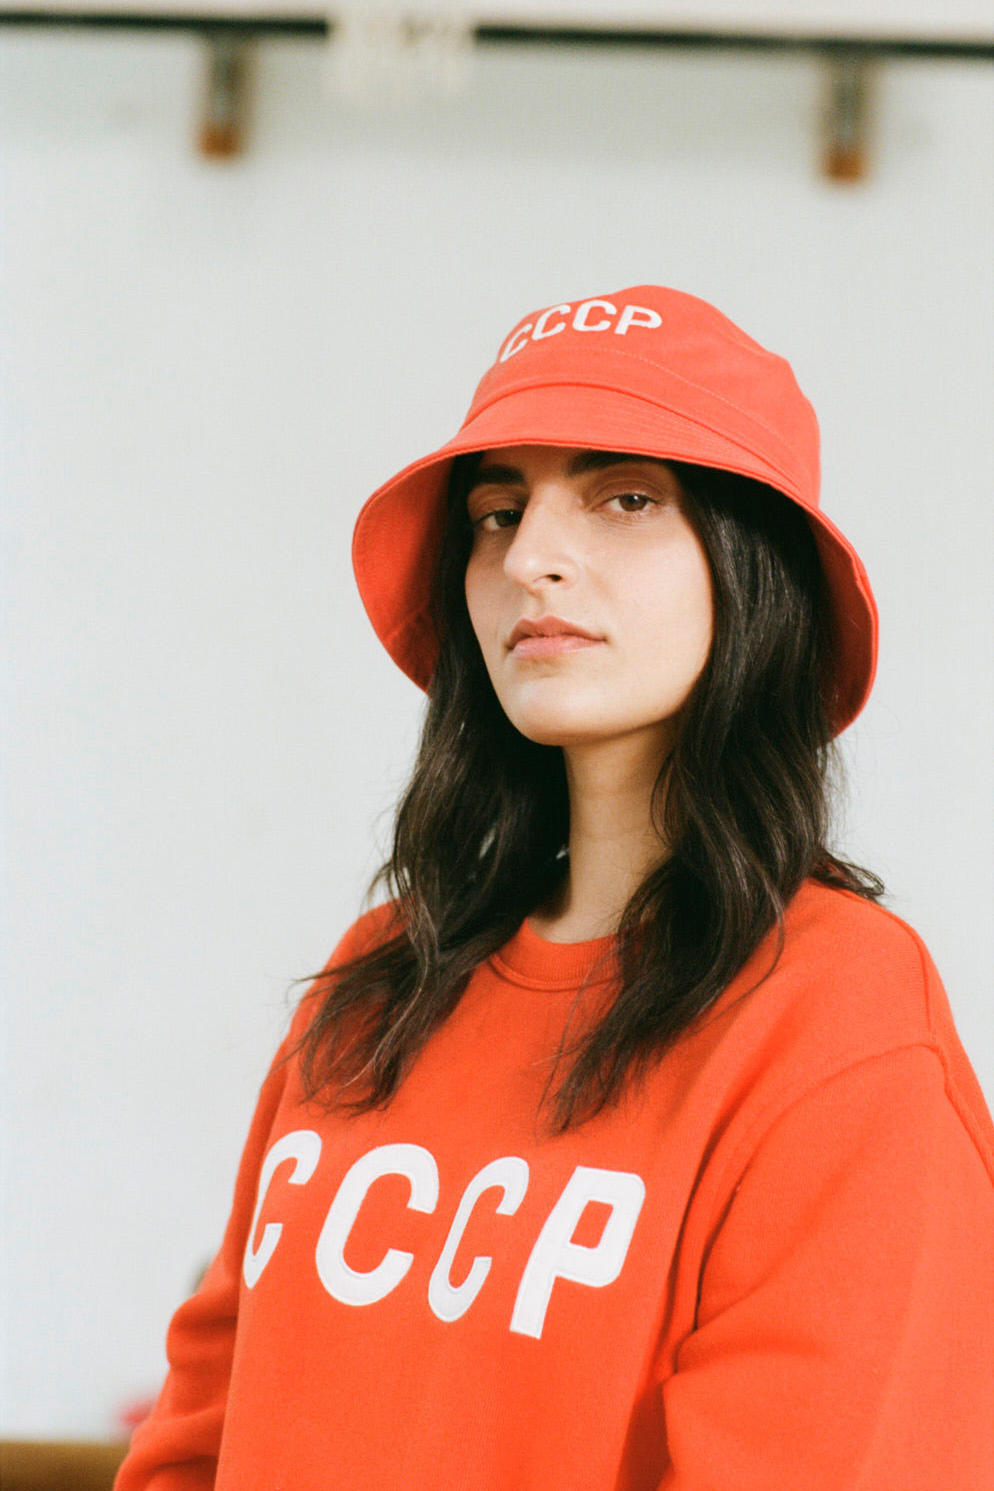 YMC x MUNDIAL Magazine FIFA Football Collection World Cup Jersey Capsule Sportswear Sports Championship